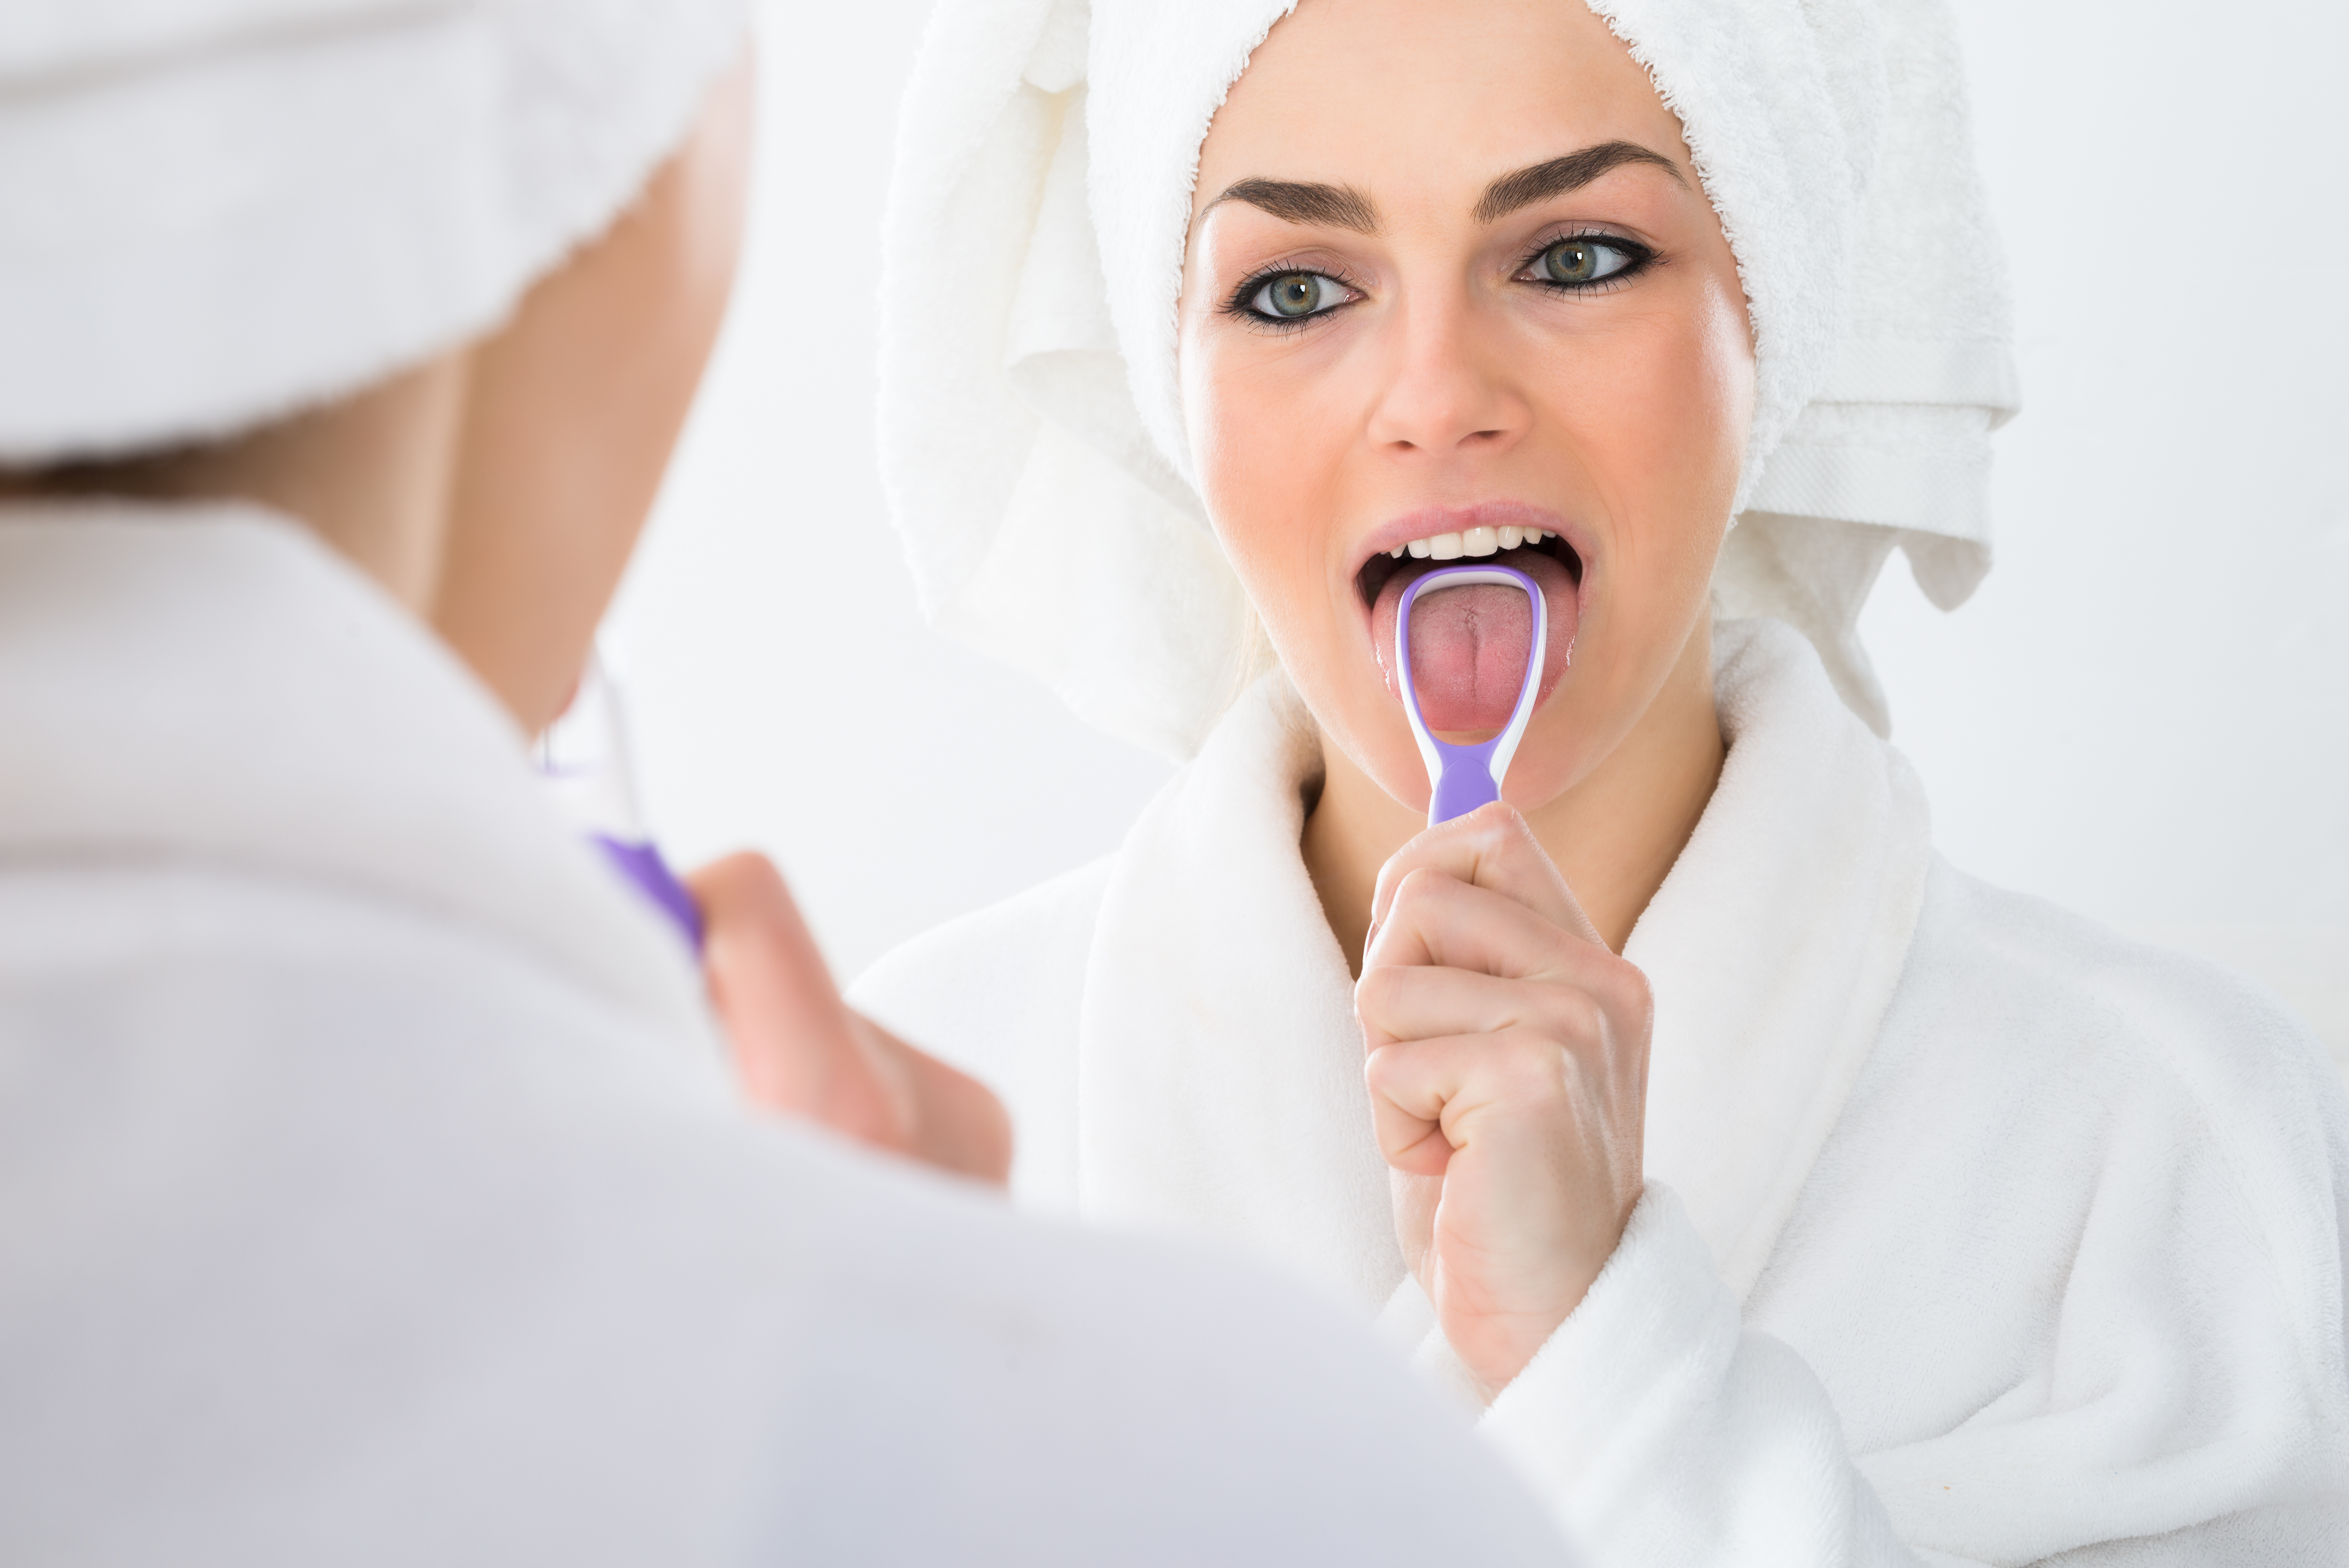 woman wearing a white bathrobe and a white towel on her head using a tongue scraper